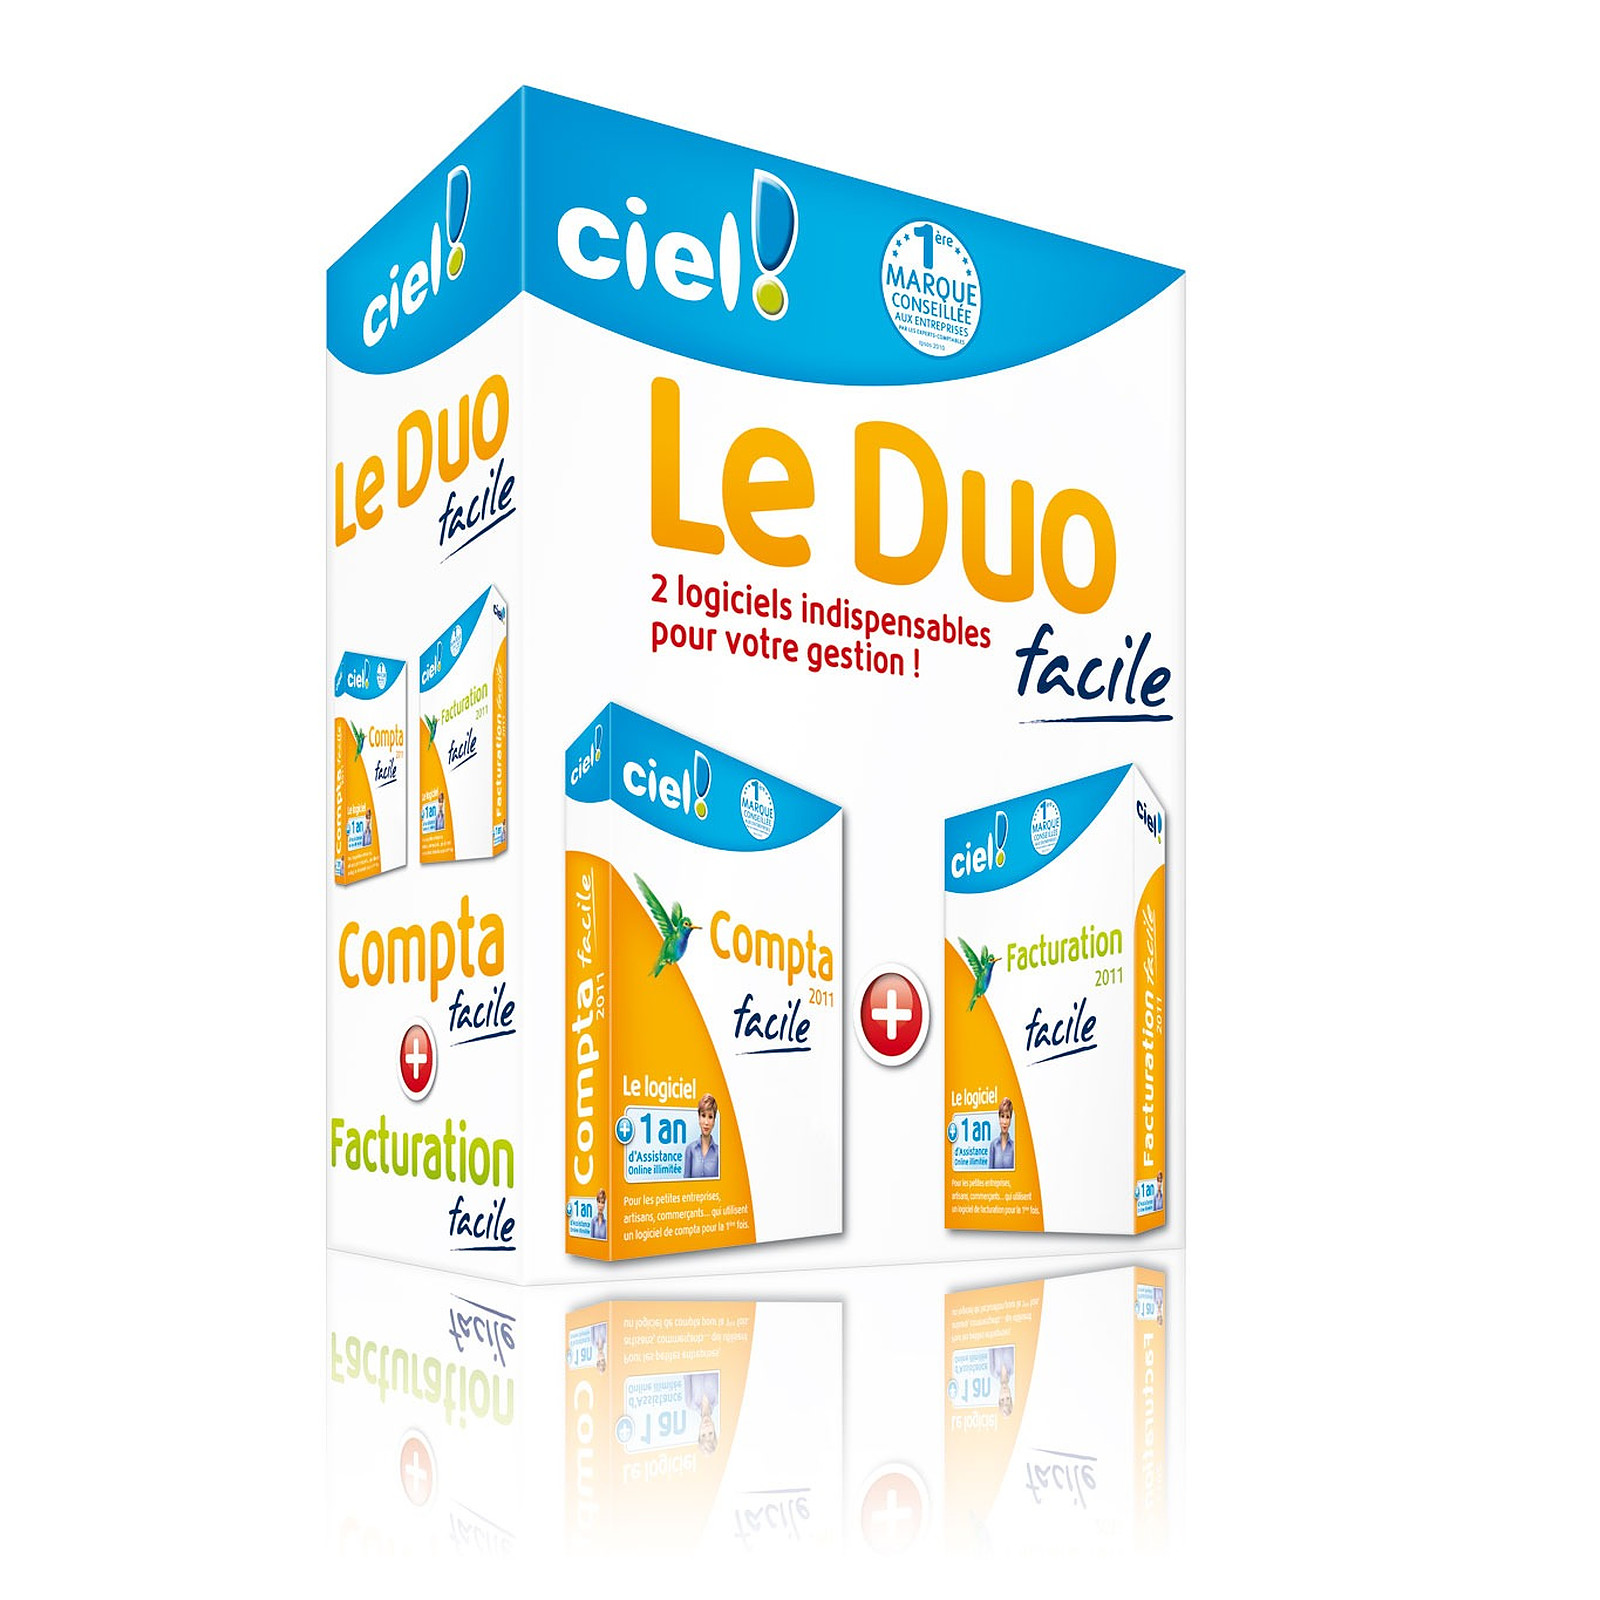 Ciel Le Duo Facile 2011